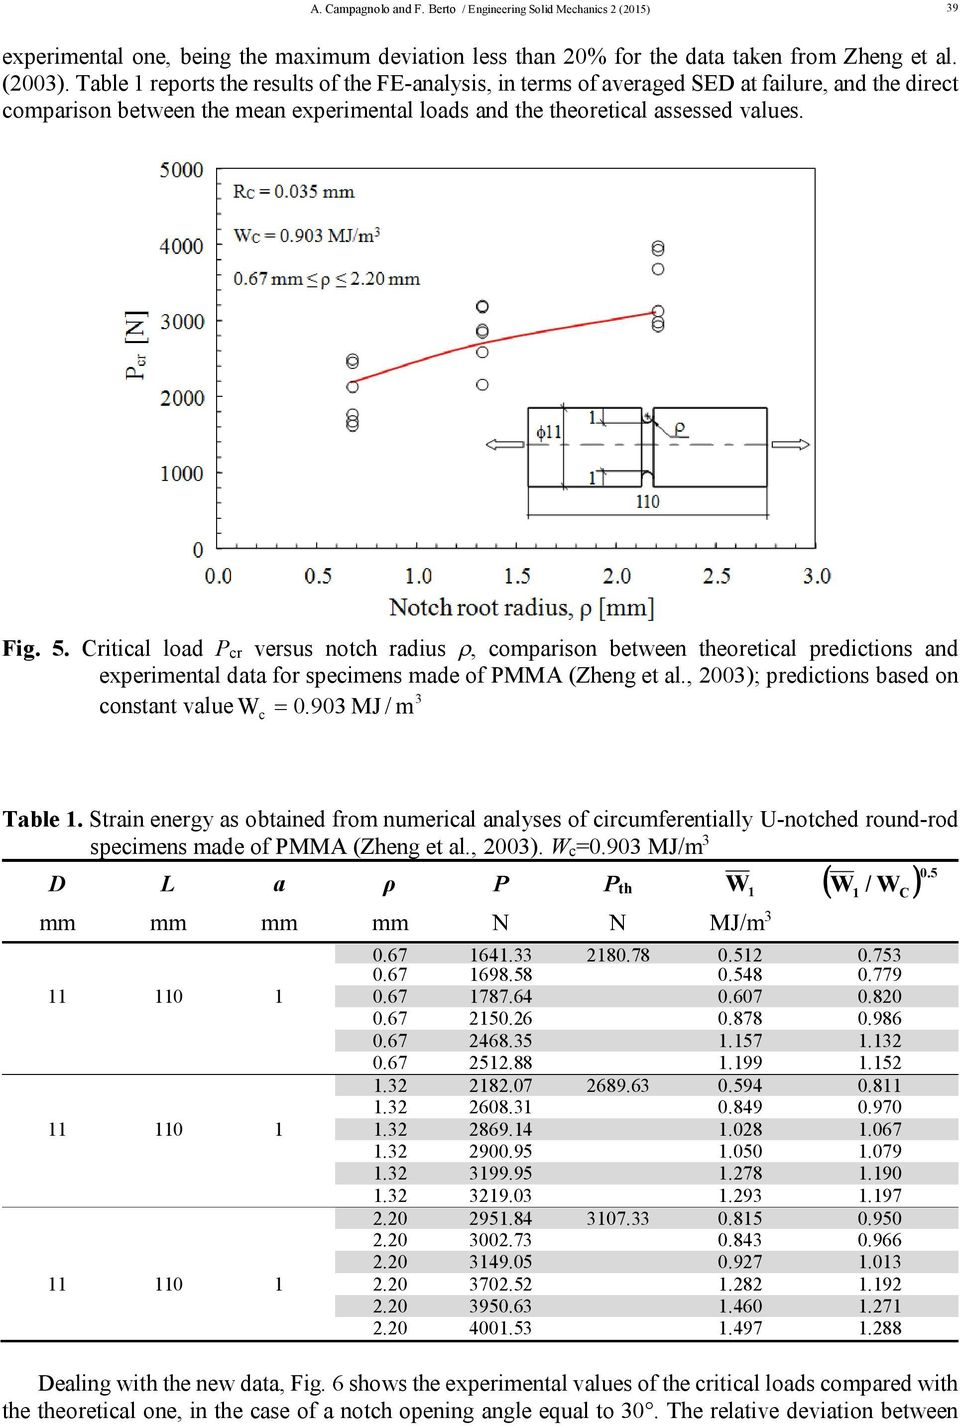 Critical load P cr versus notch radius, comparison between theoretical predictions and experimental data for specimens made of PMMA (Zheng et al., 2003); predictions based on 3 constant value W 0.